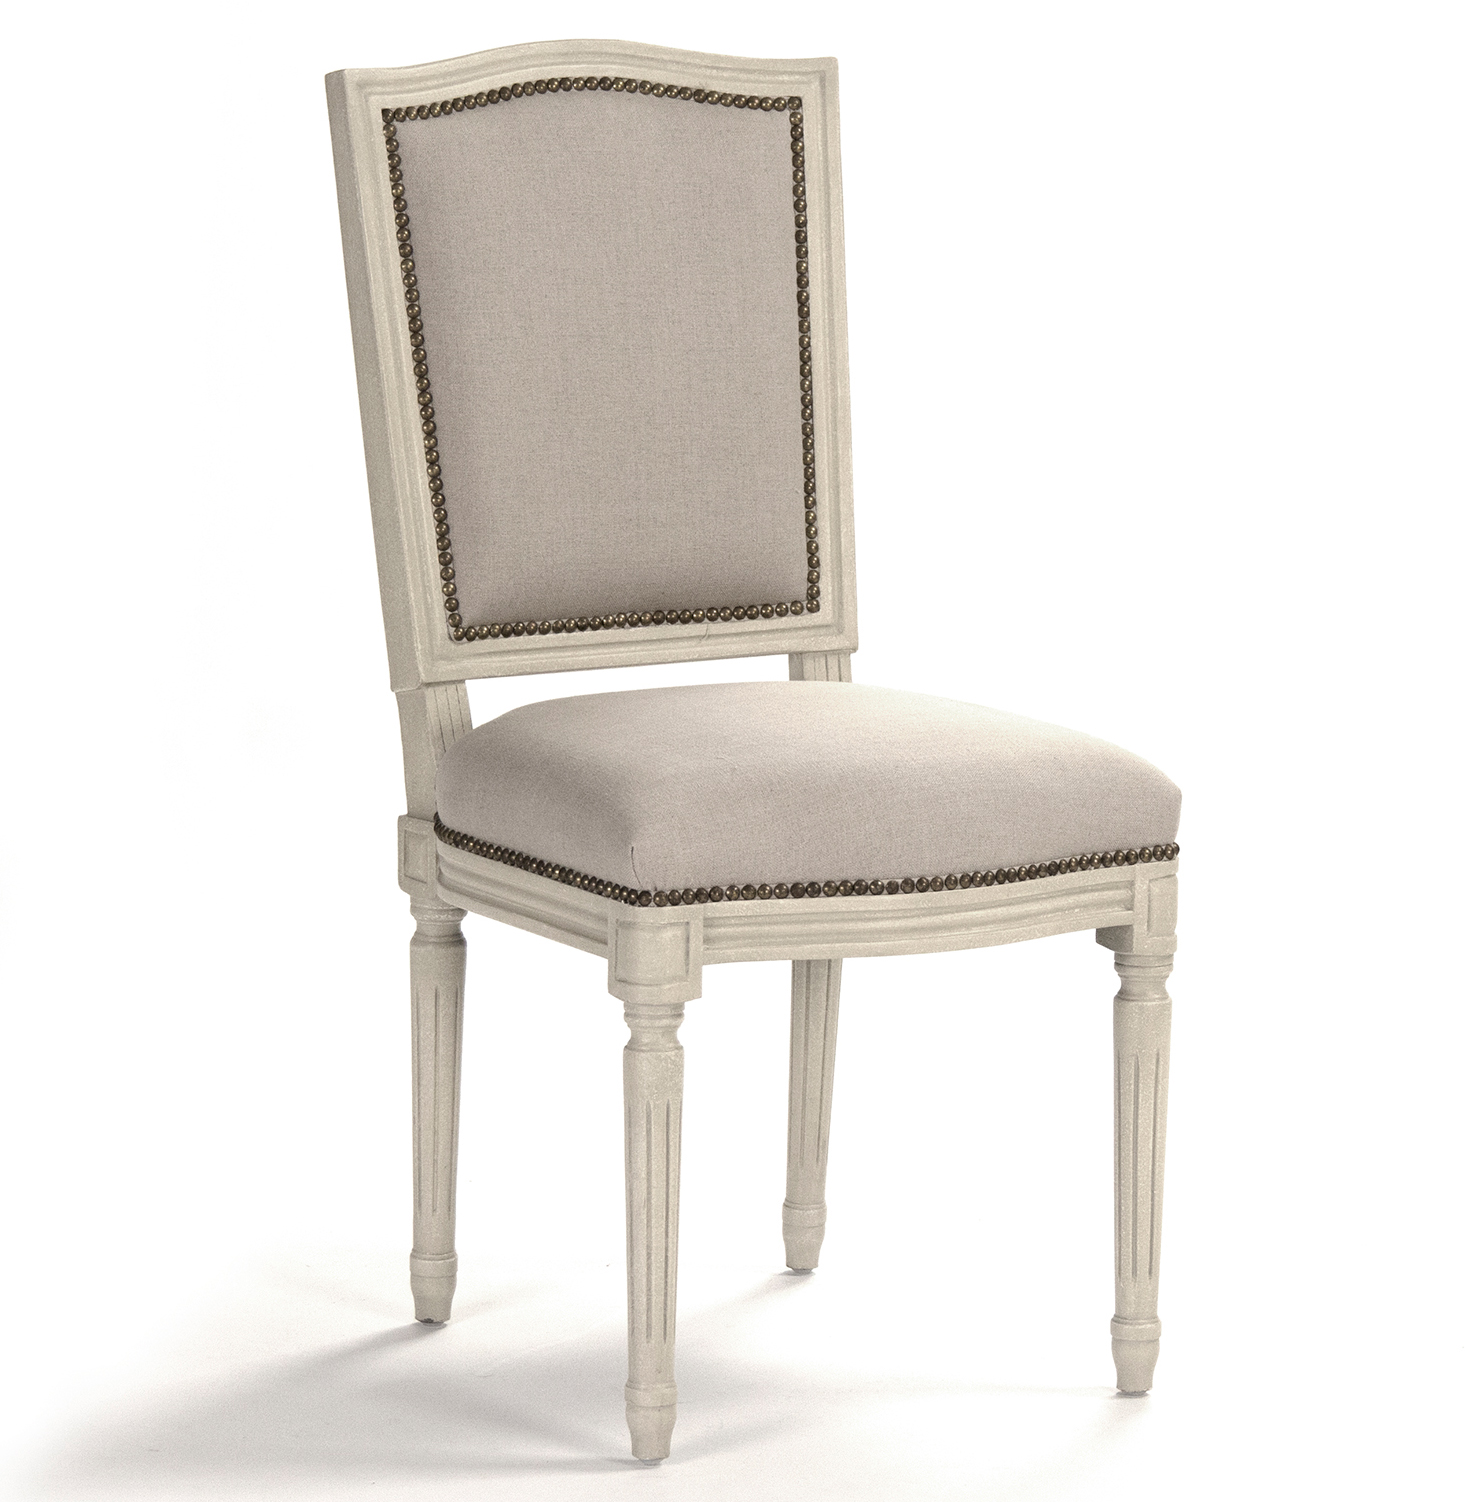 Pair Benoit French Country Linen Burlap Antique Ivory Dining Side Chair